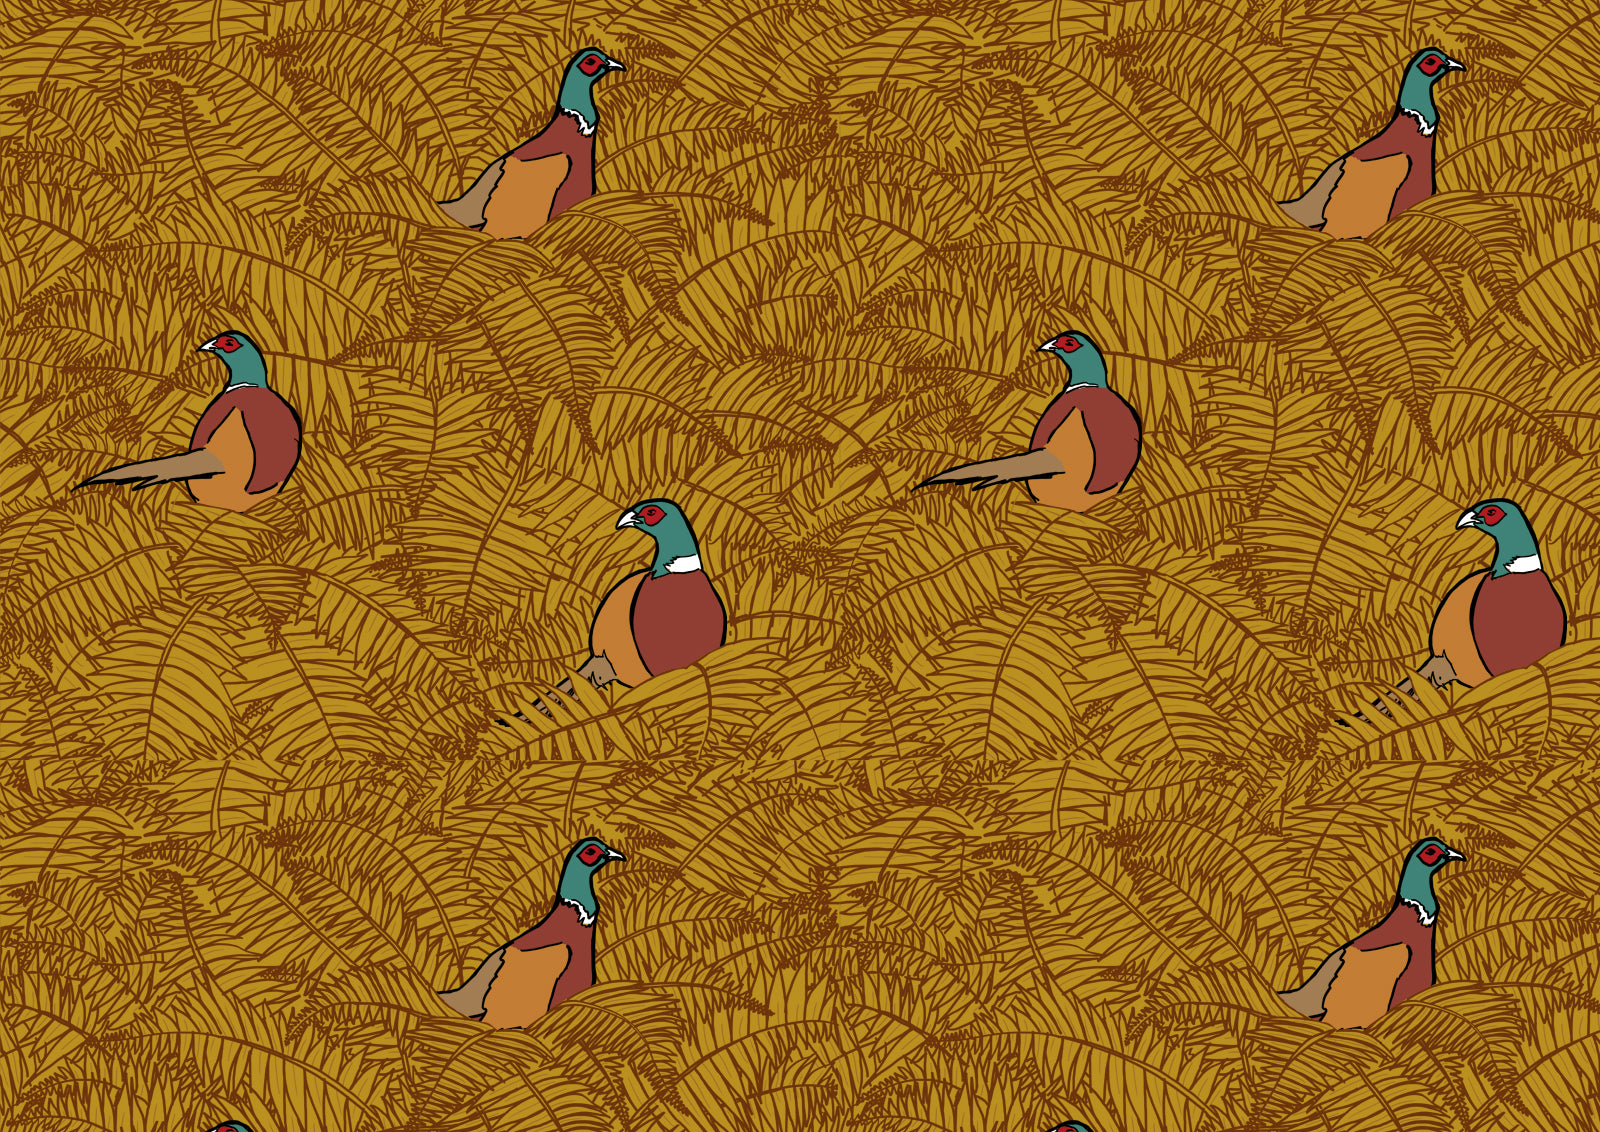 WALLPAPER - PHEASANTS